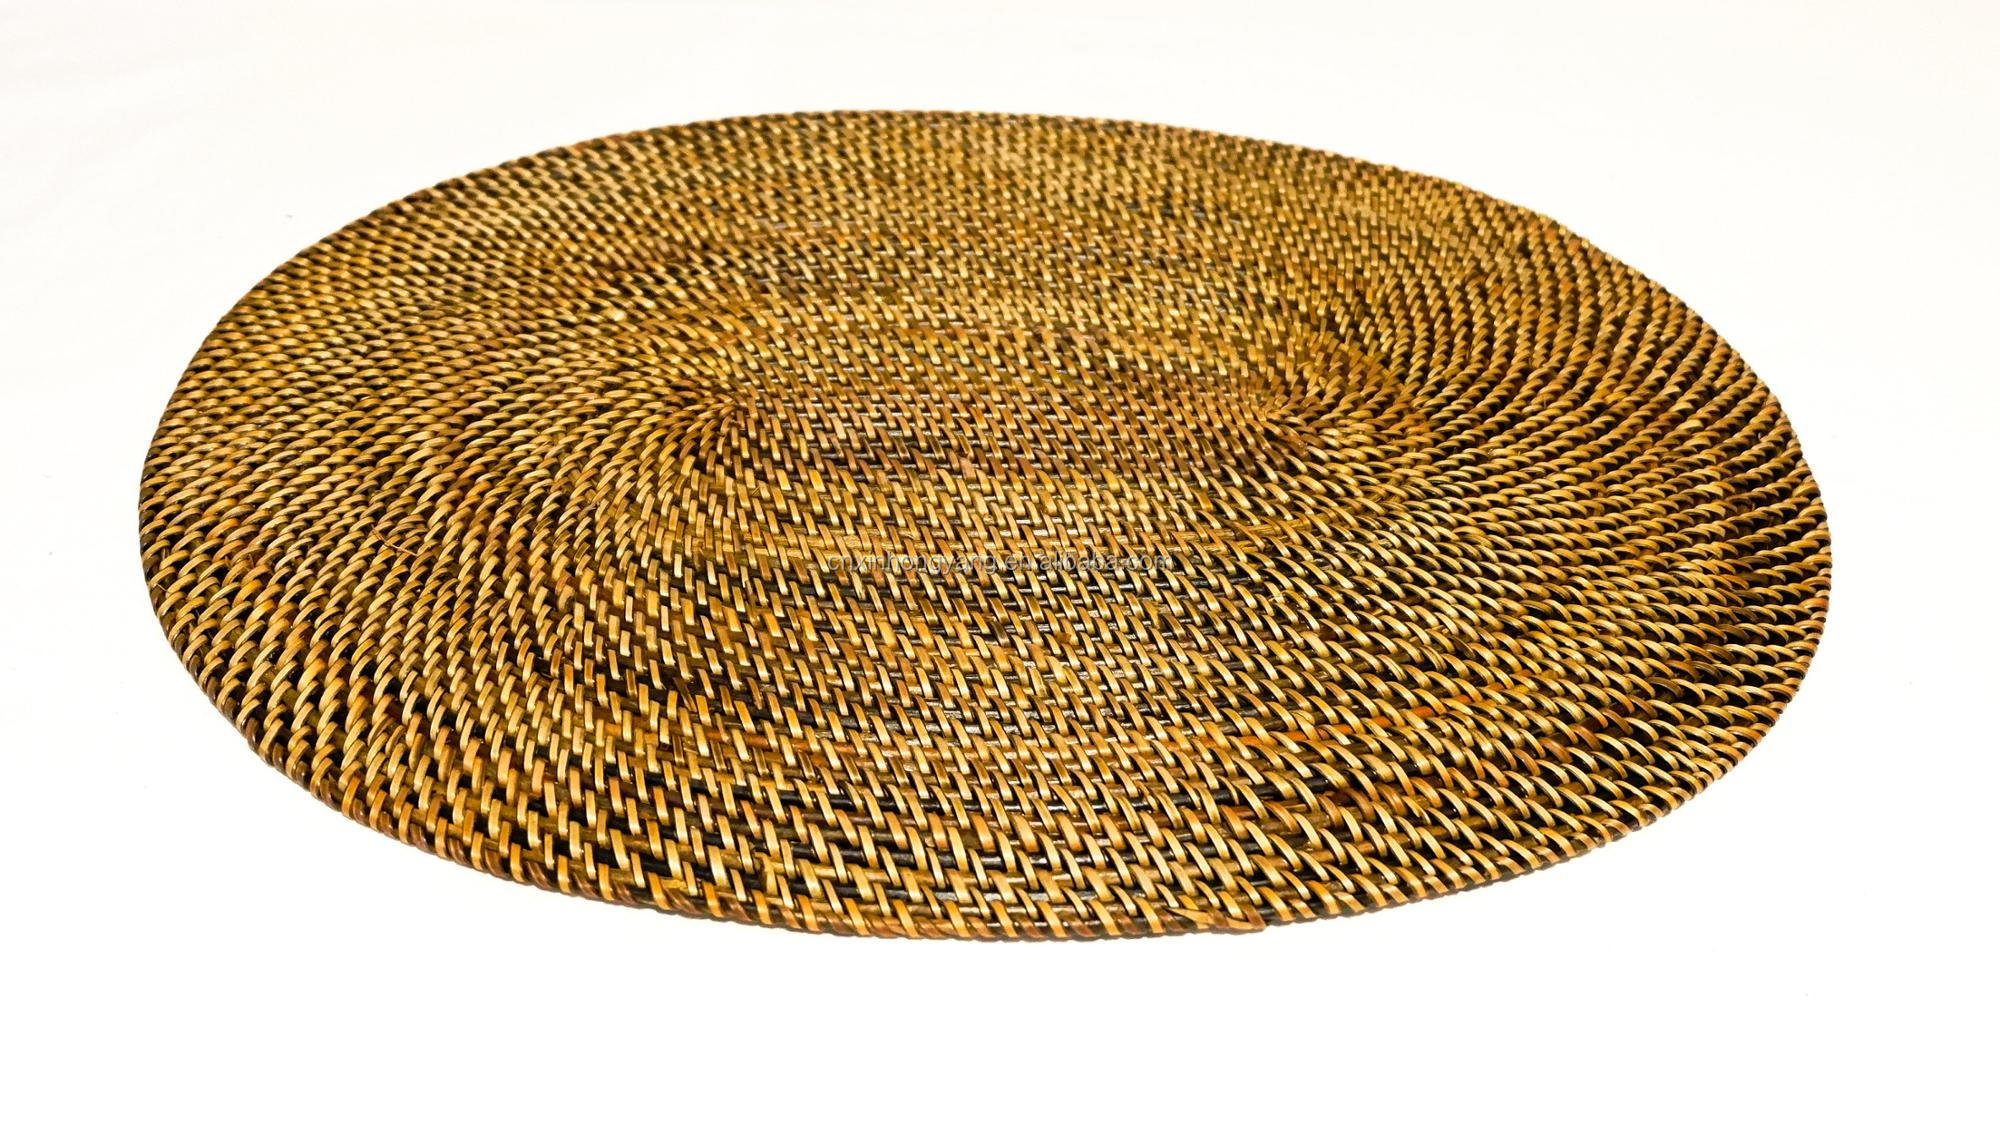 Source factory wholesale cane woven placemat, rattan hand weaved placemats, natural straw weave table mat, weaving bamboo mats